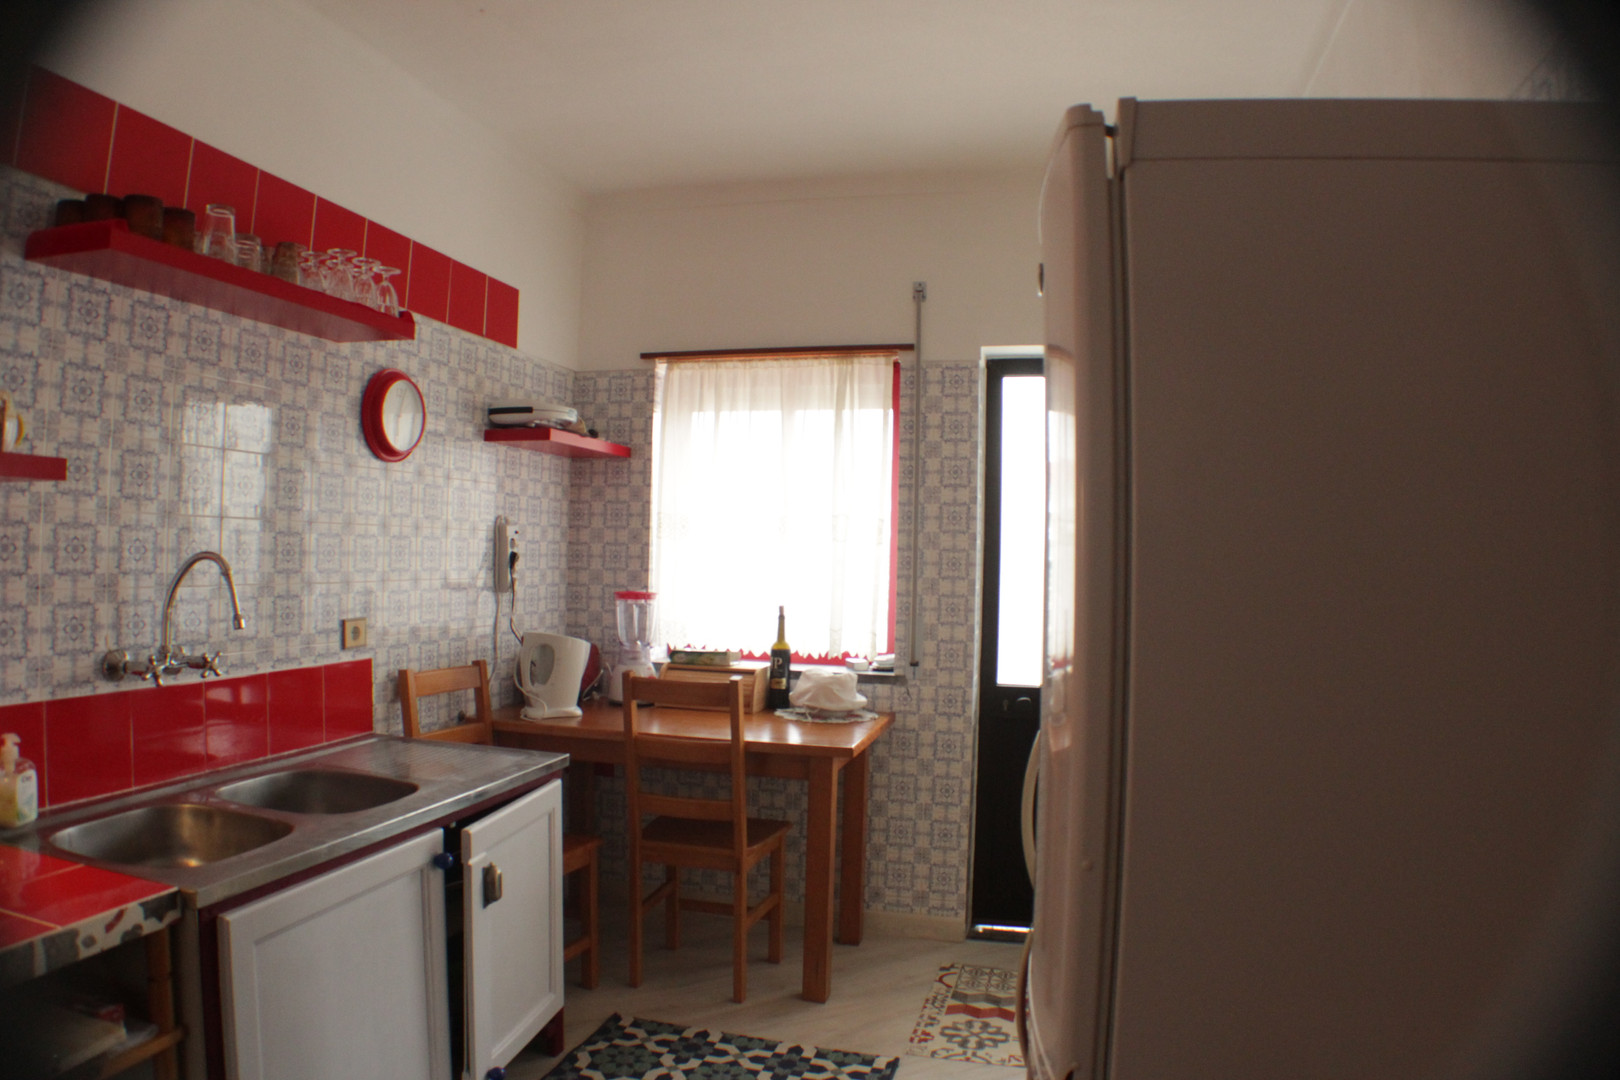 Baleal's kitchen/accomodation